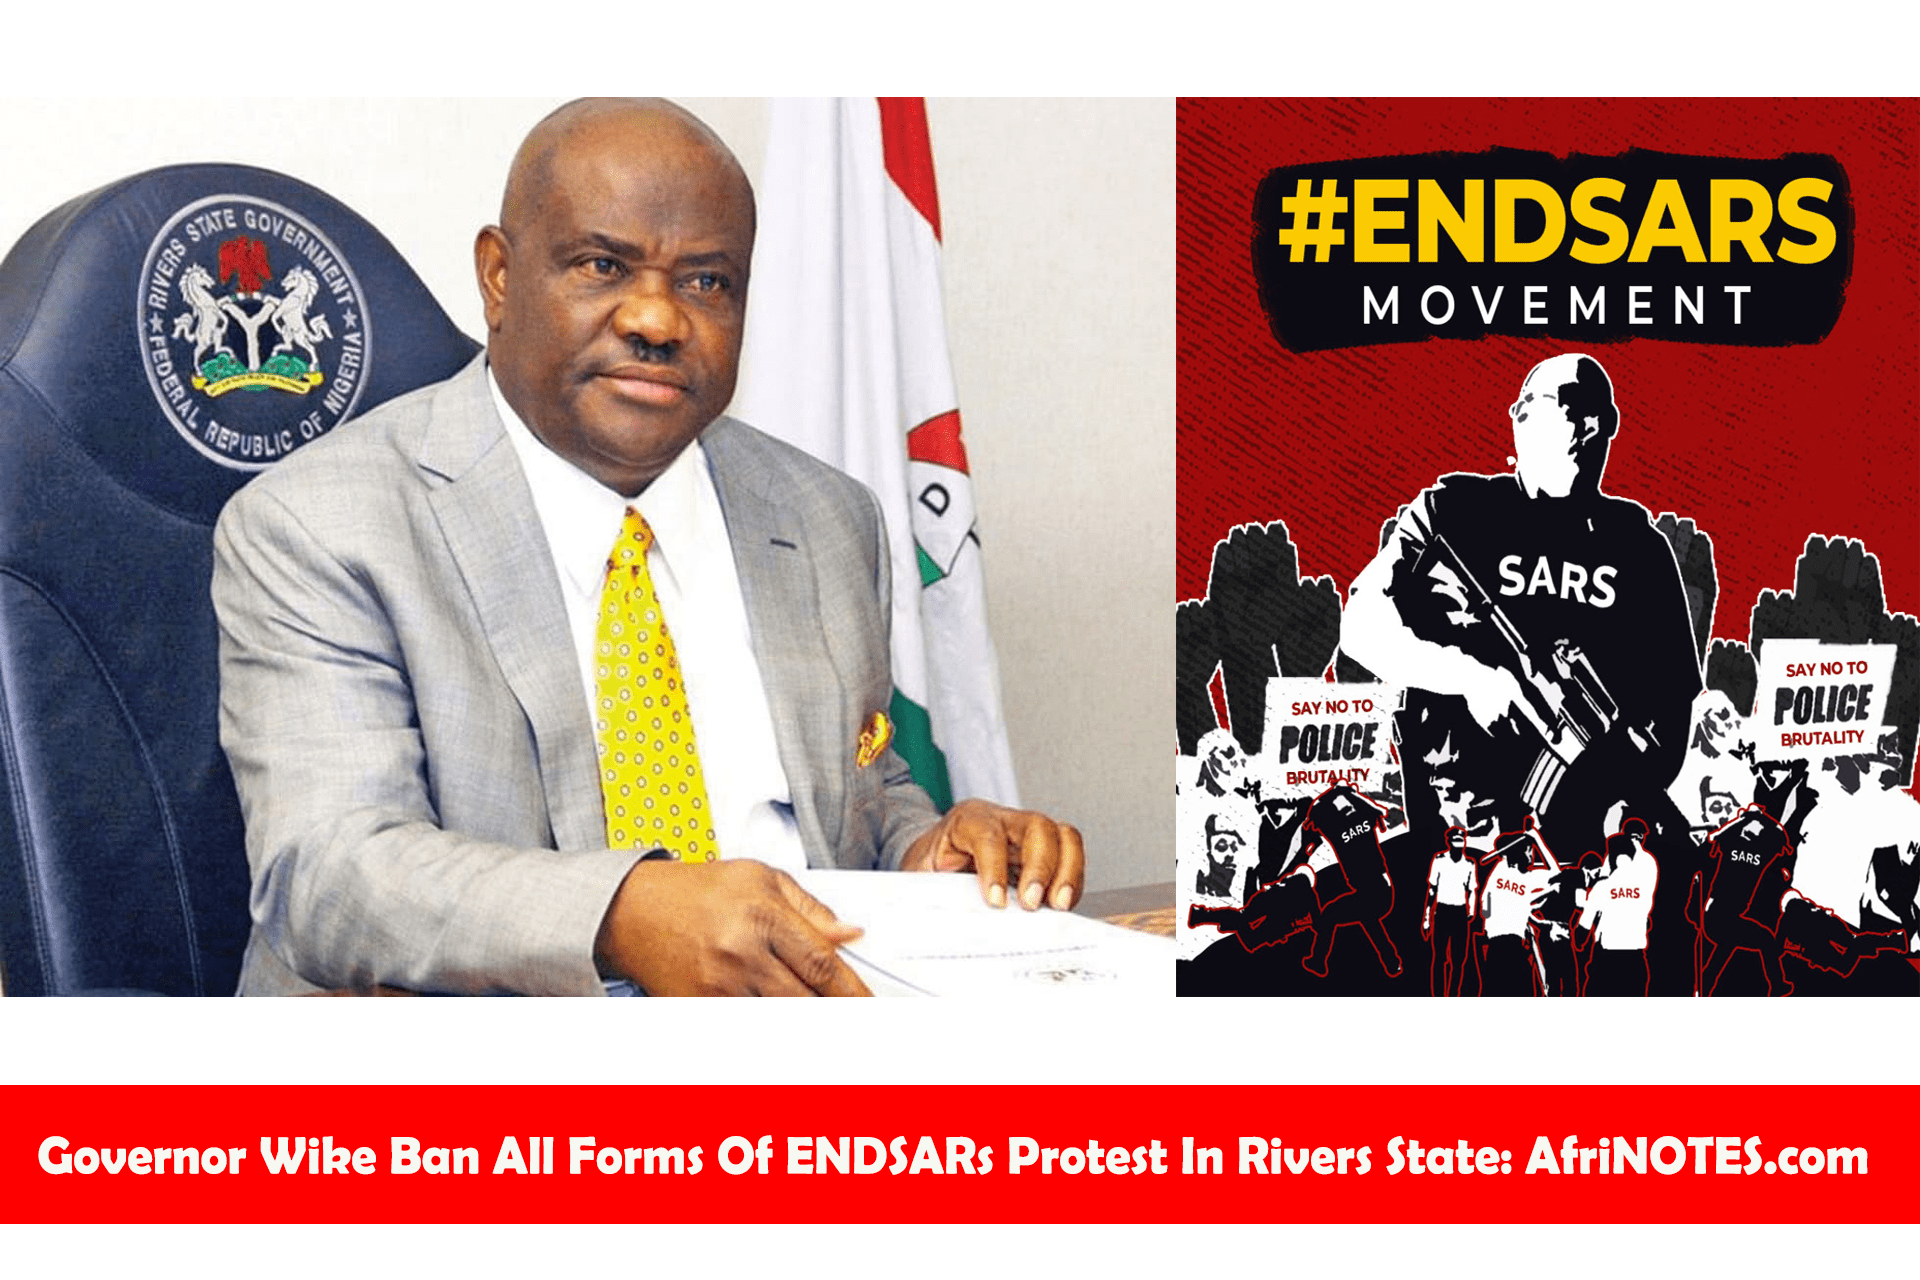 Governor-Wike-Ban-All-Forms-Of-ENDSARs-Protest-In-Rivers-State